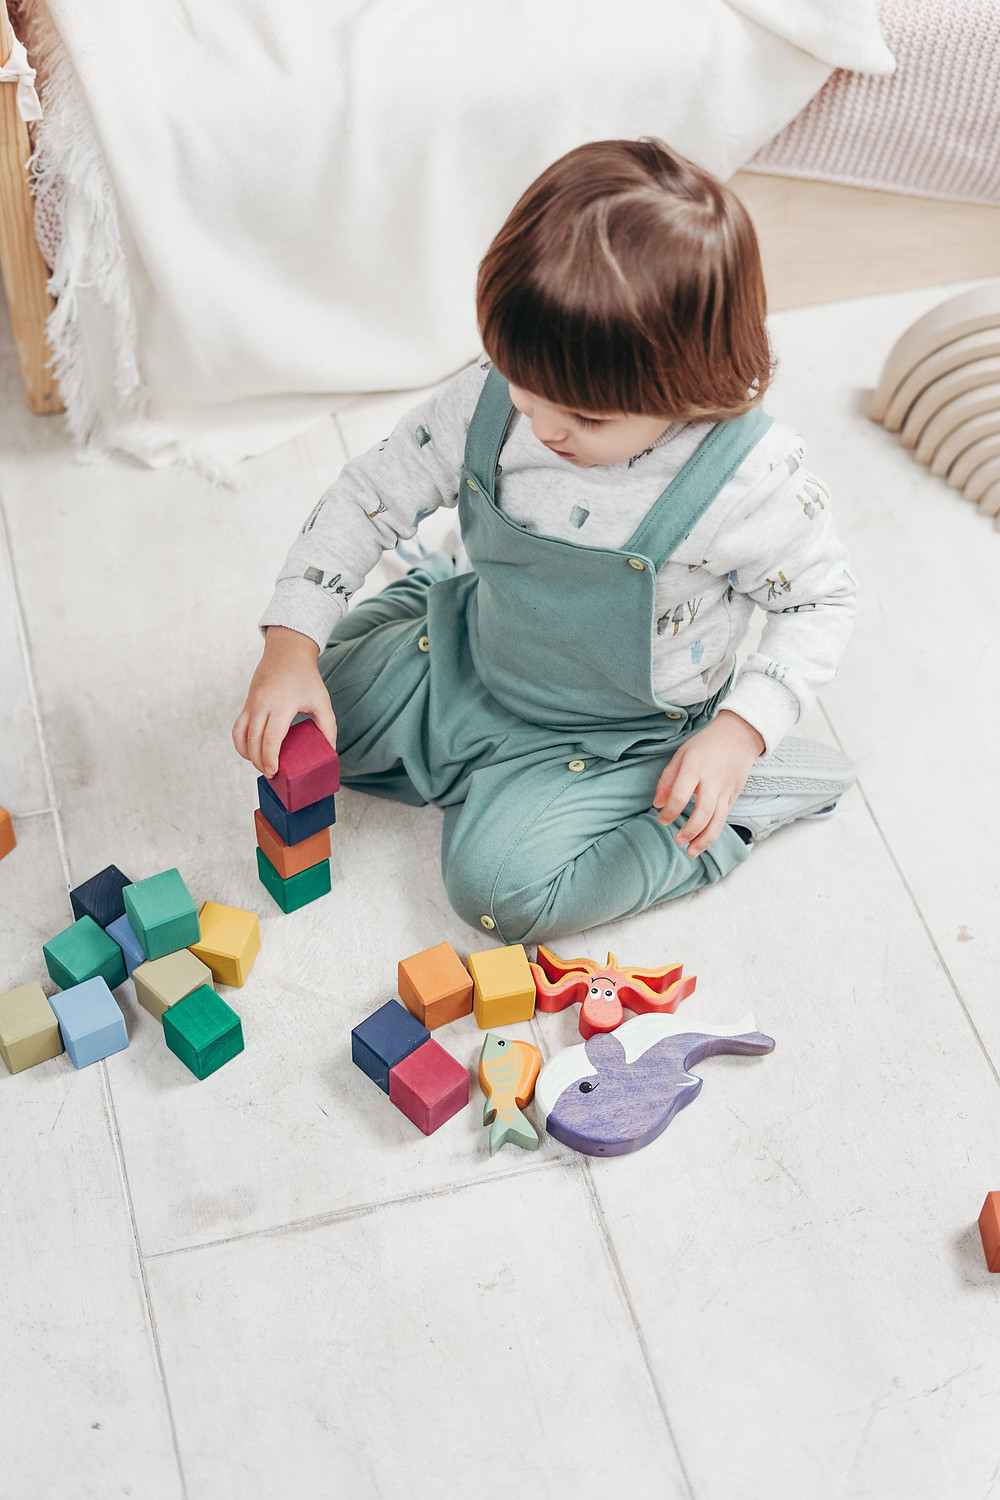 A toddler wearing grey and white coloured jumpsuit playing with her toys